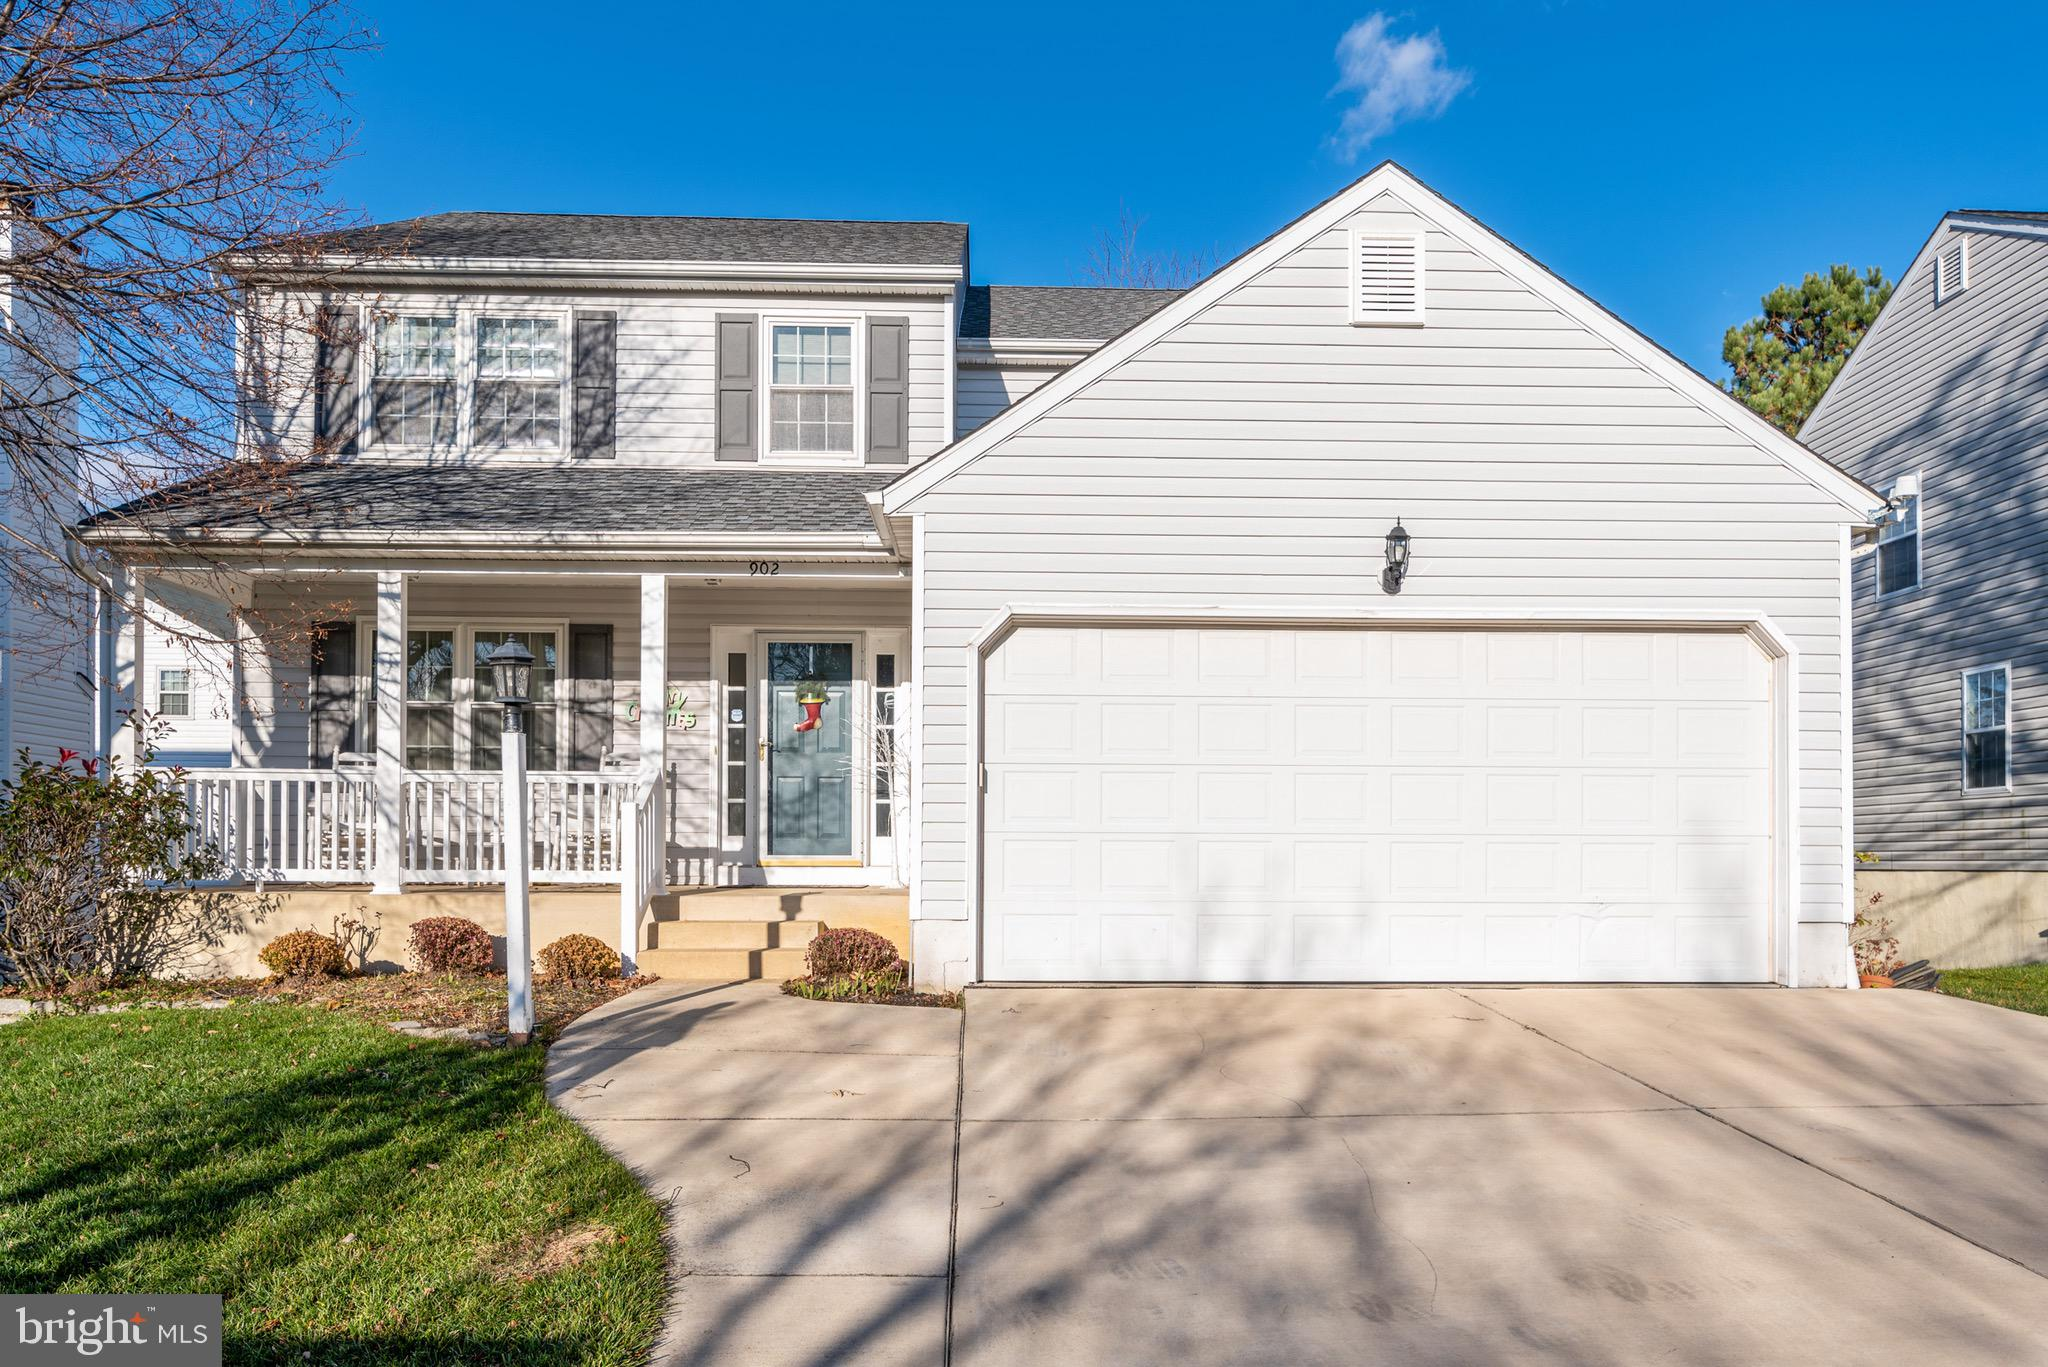 Piney Orchard 5 bedroom colonial.   The eat-in kitchen has been updated with all new stainless appli